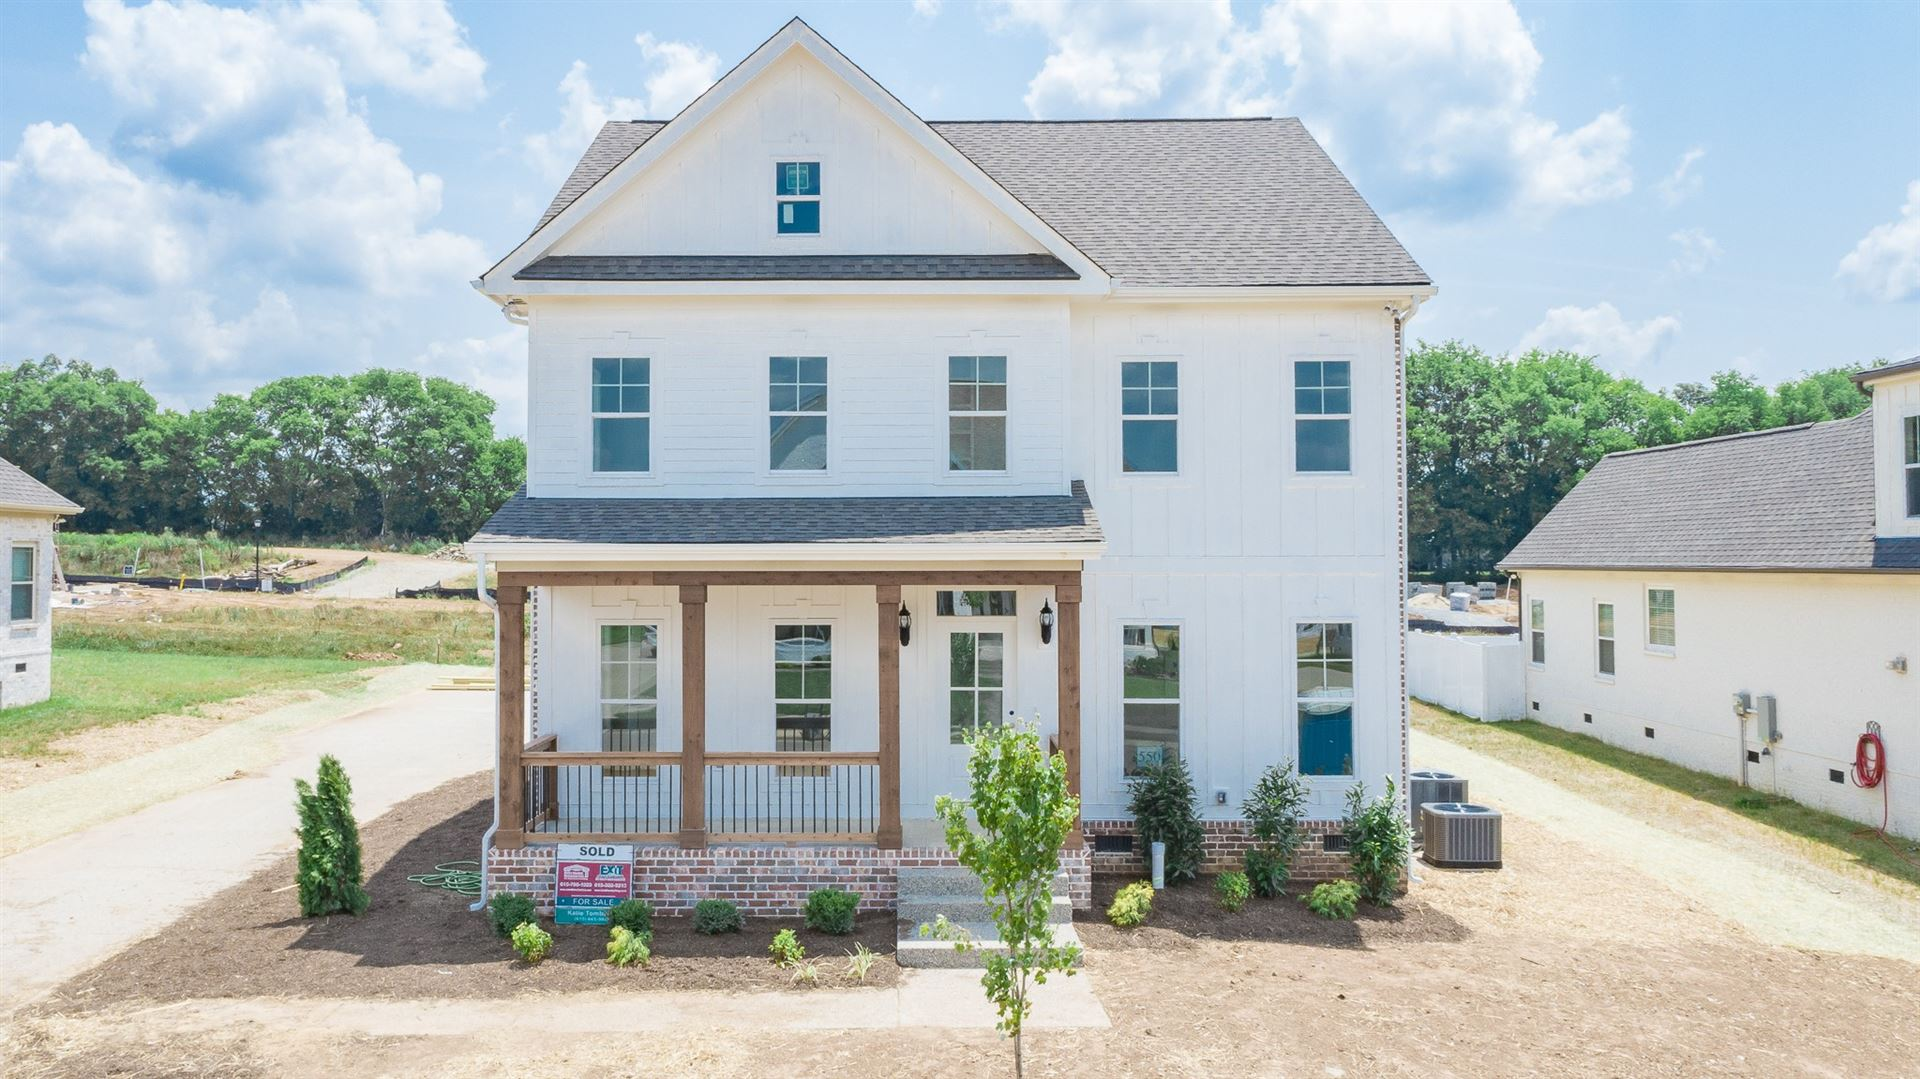 Photo of 8006 Brightwater Way Lot 481, Spring Hill, TN 37174 (MLS # 2300640)